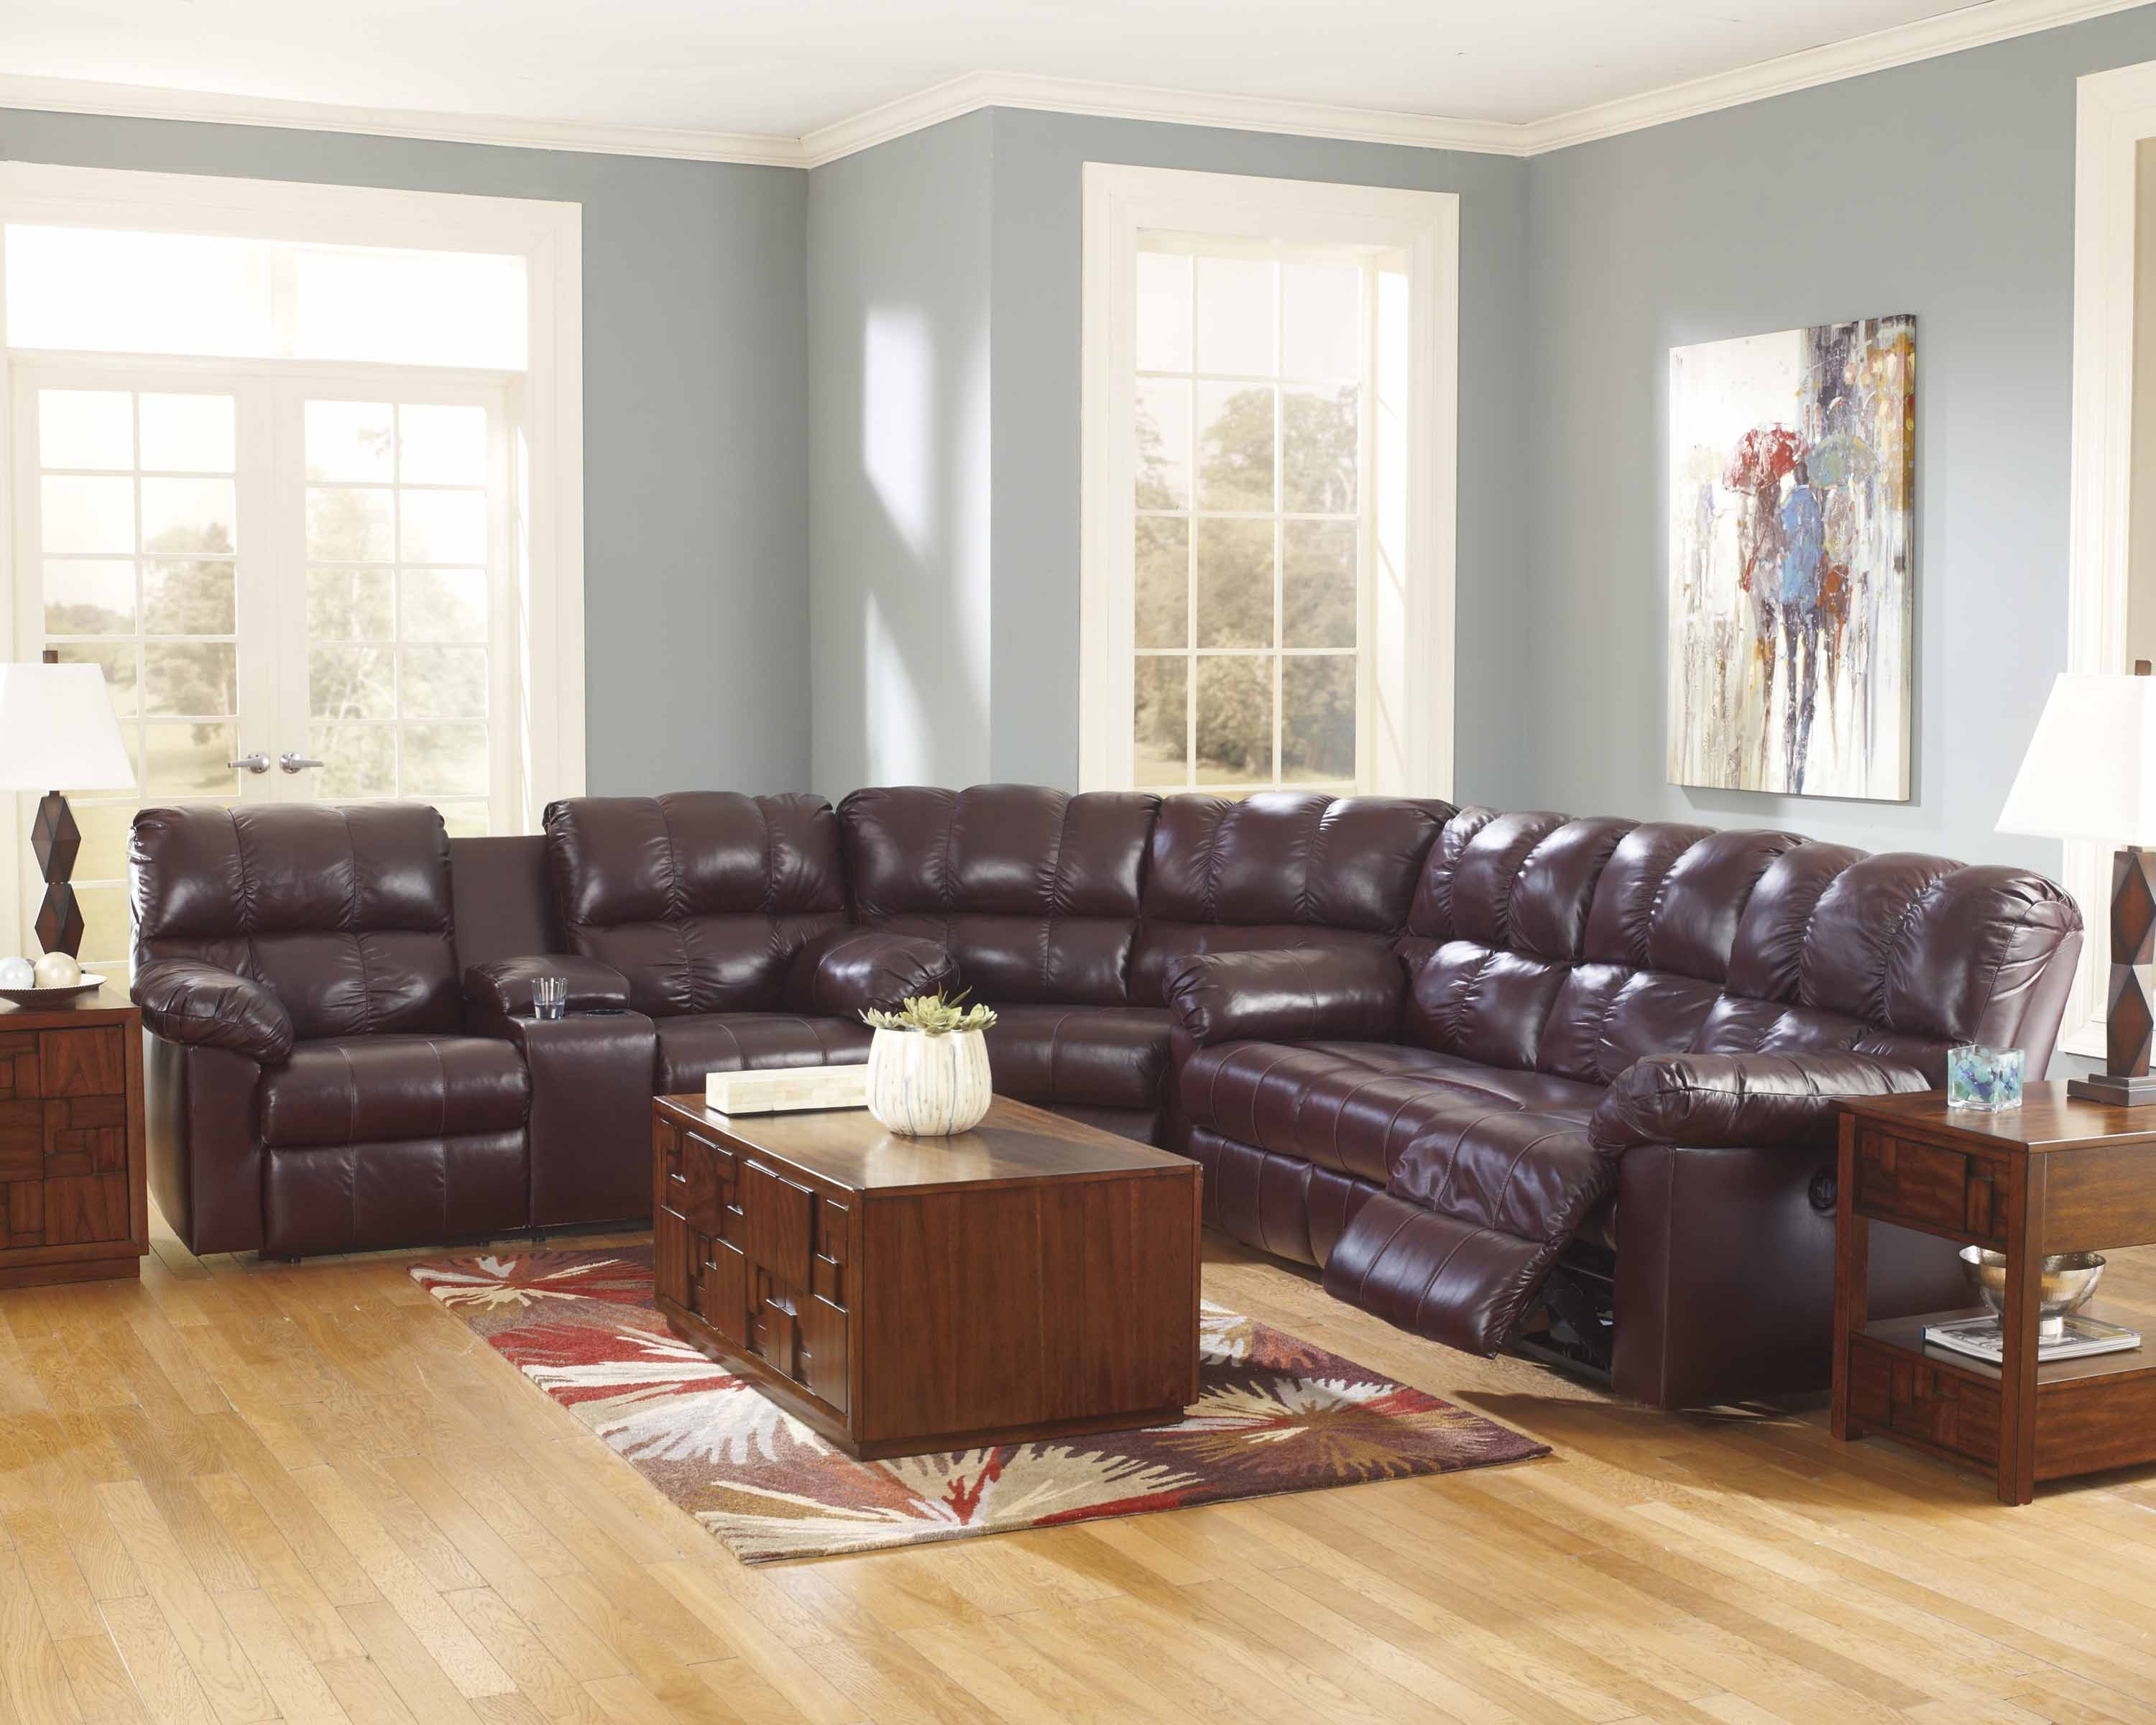 American Freight Sectionals Pertaining To Erie Pa Sectional Sofas (View 2 of 15)